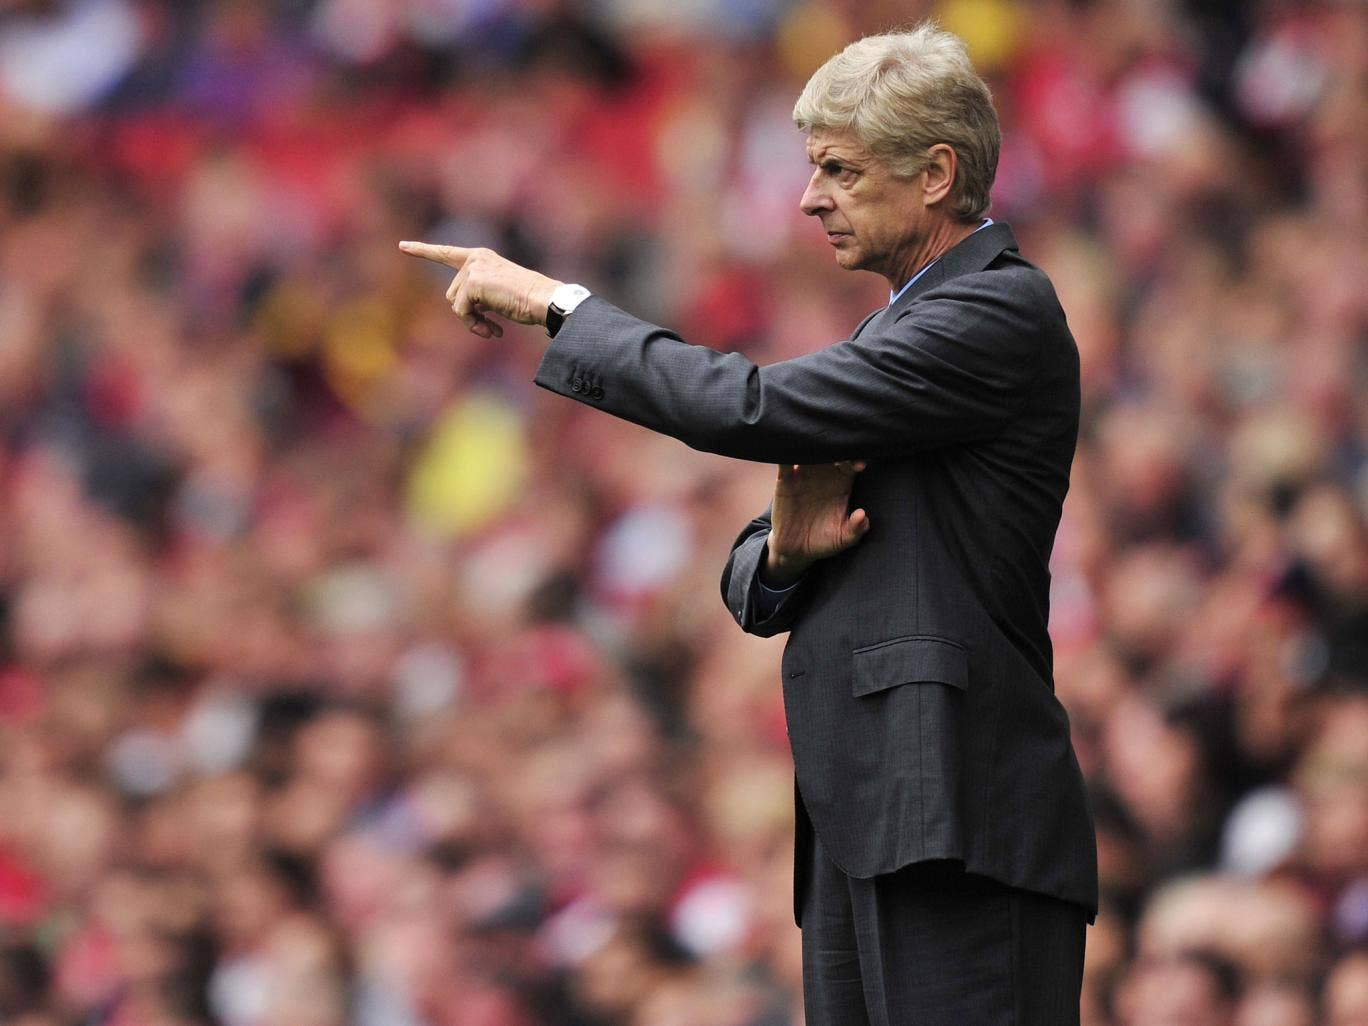 Arsenal manager Arsène Wenger said he is prepared to strengthen his squad before the end of the transfer window